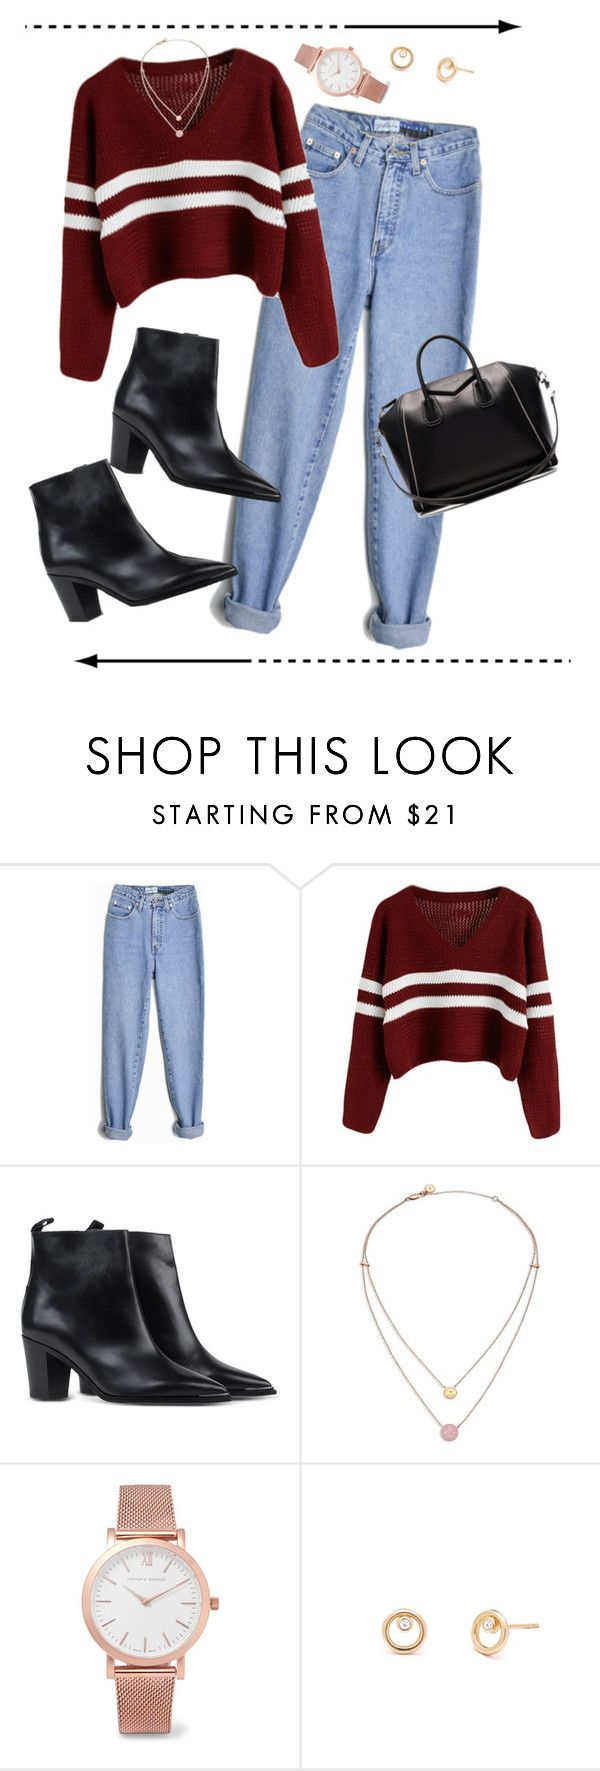 """""""Friends' Monica Geller"""" by discarnate ❤ liked on Polyvore featuring Acne Studios, Michael Kors, Larsson & Jennings and Givenchy"""